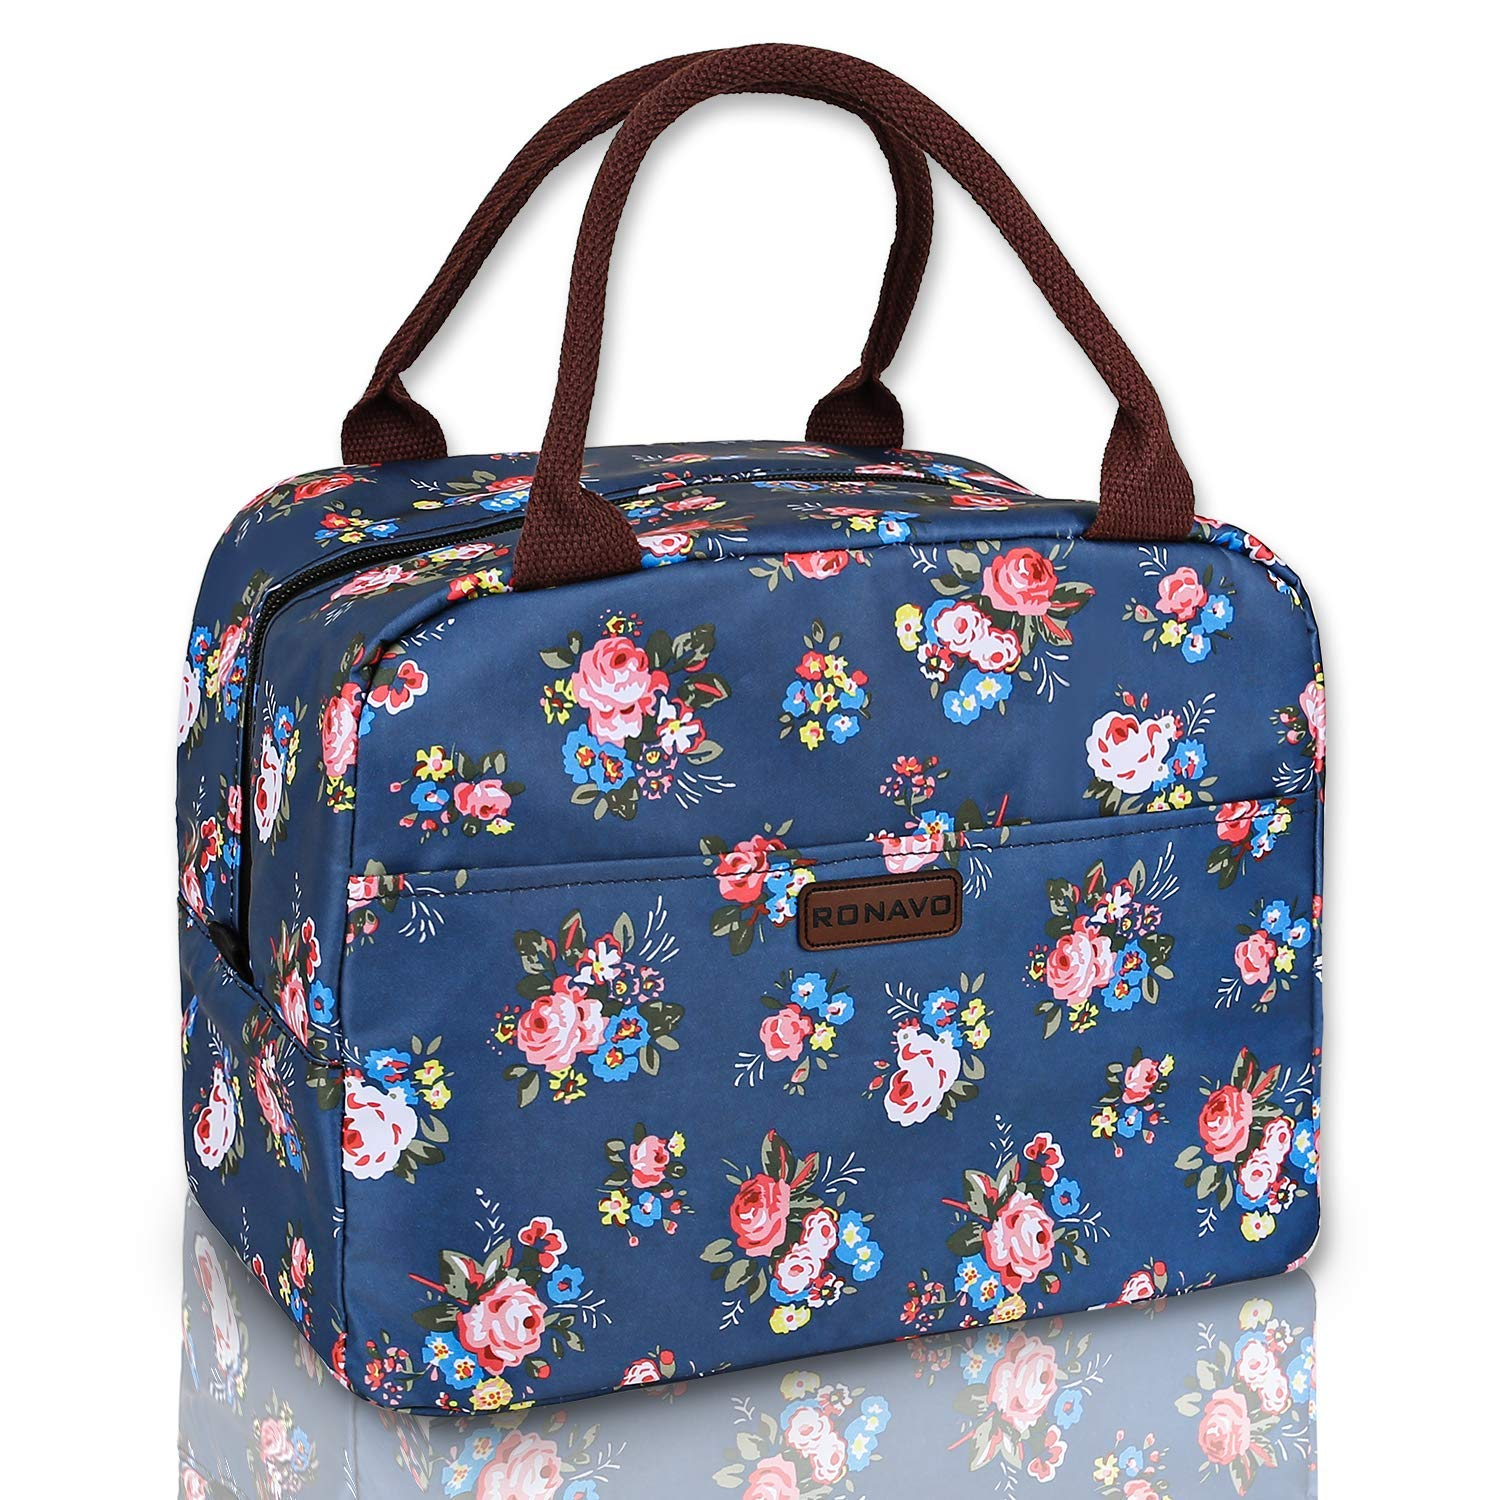 51caaa669d56 RONAVO Lunch Bag Cooler Bag Women Tote Bag Insulated Lunch Box  Water-Resistant Thermal Lunch Bag Soft Leak Proof Liner Lunch Bags for ...